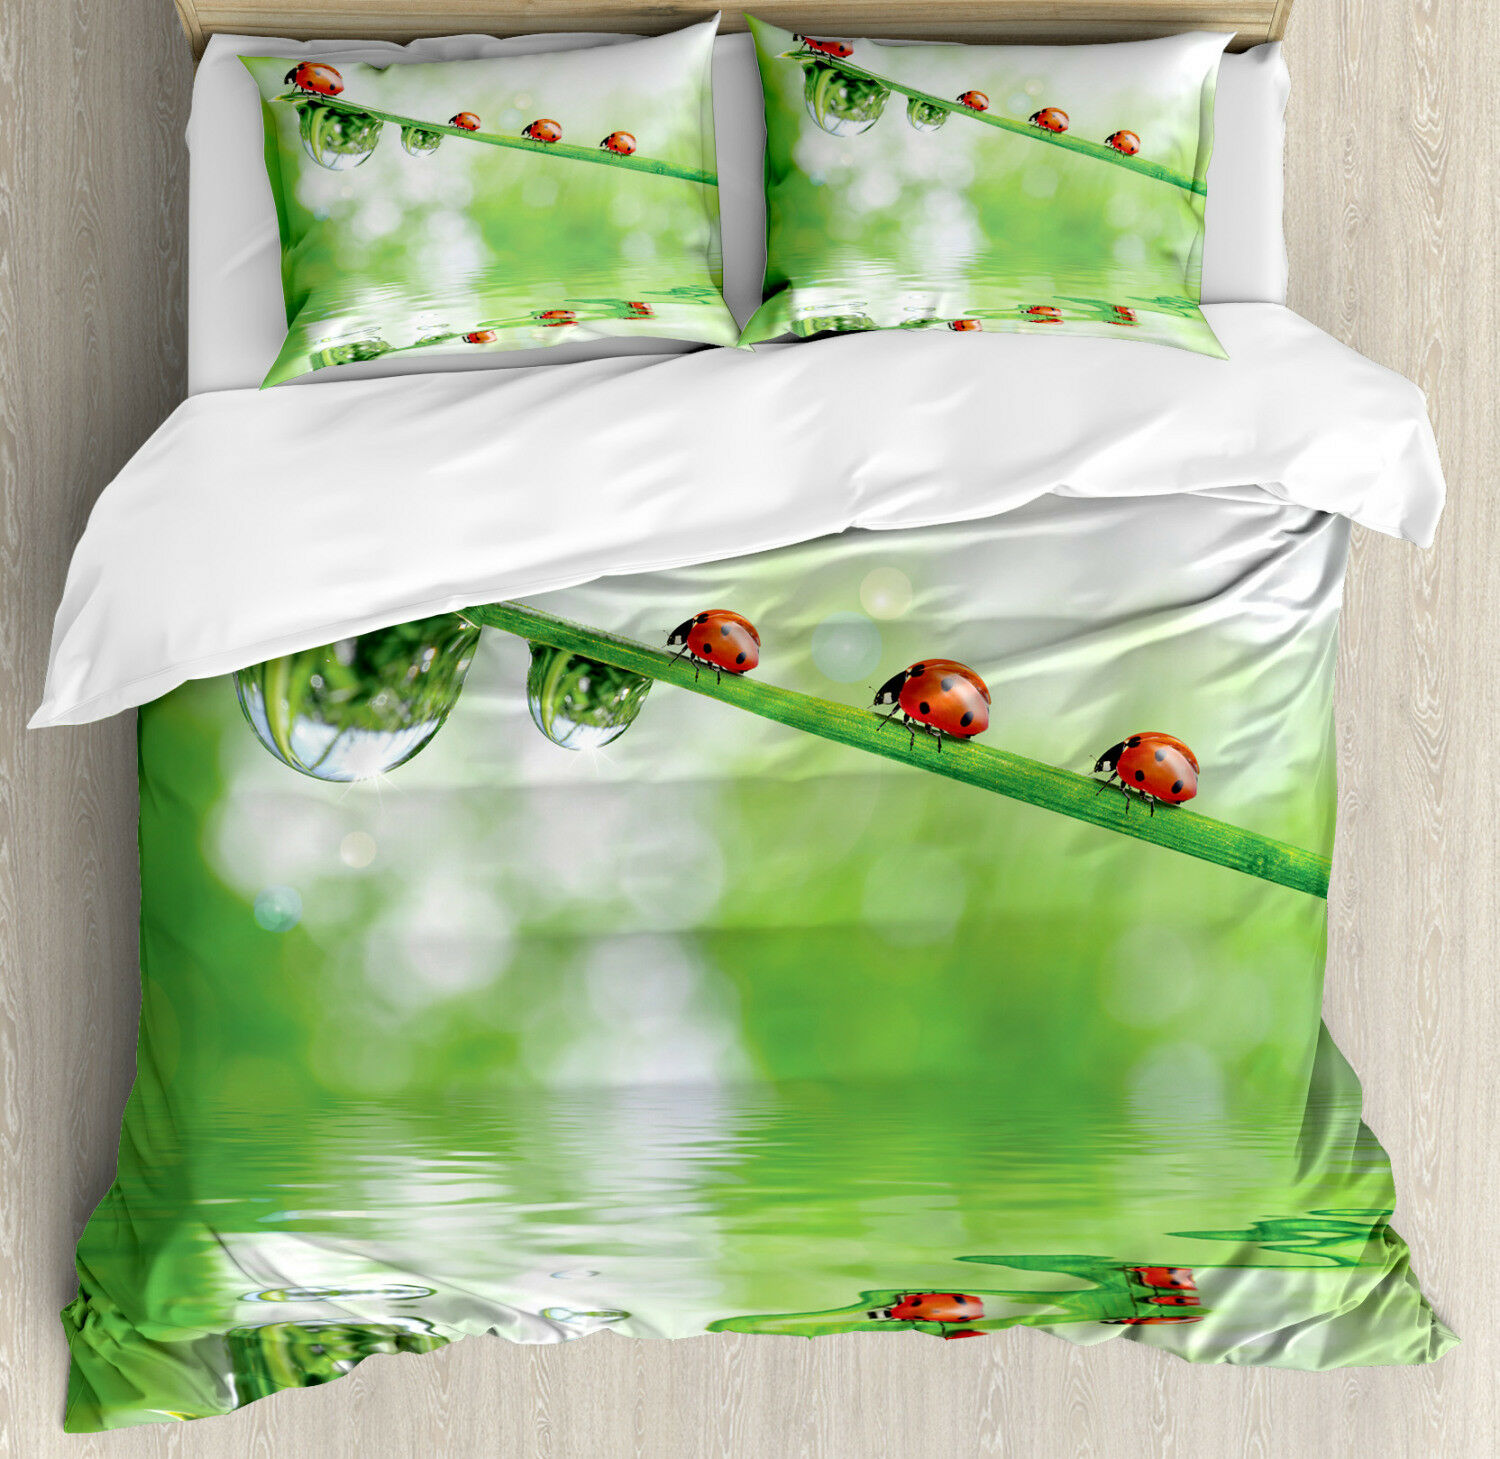 Nature Duvet Cover Set with Pillow Shams Ladybug on Water Image Print